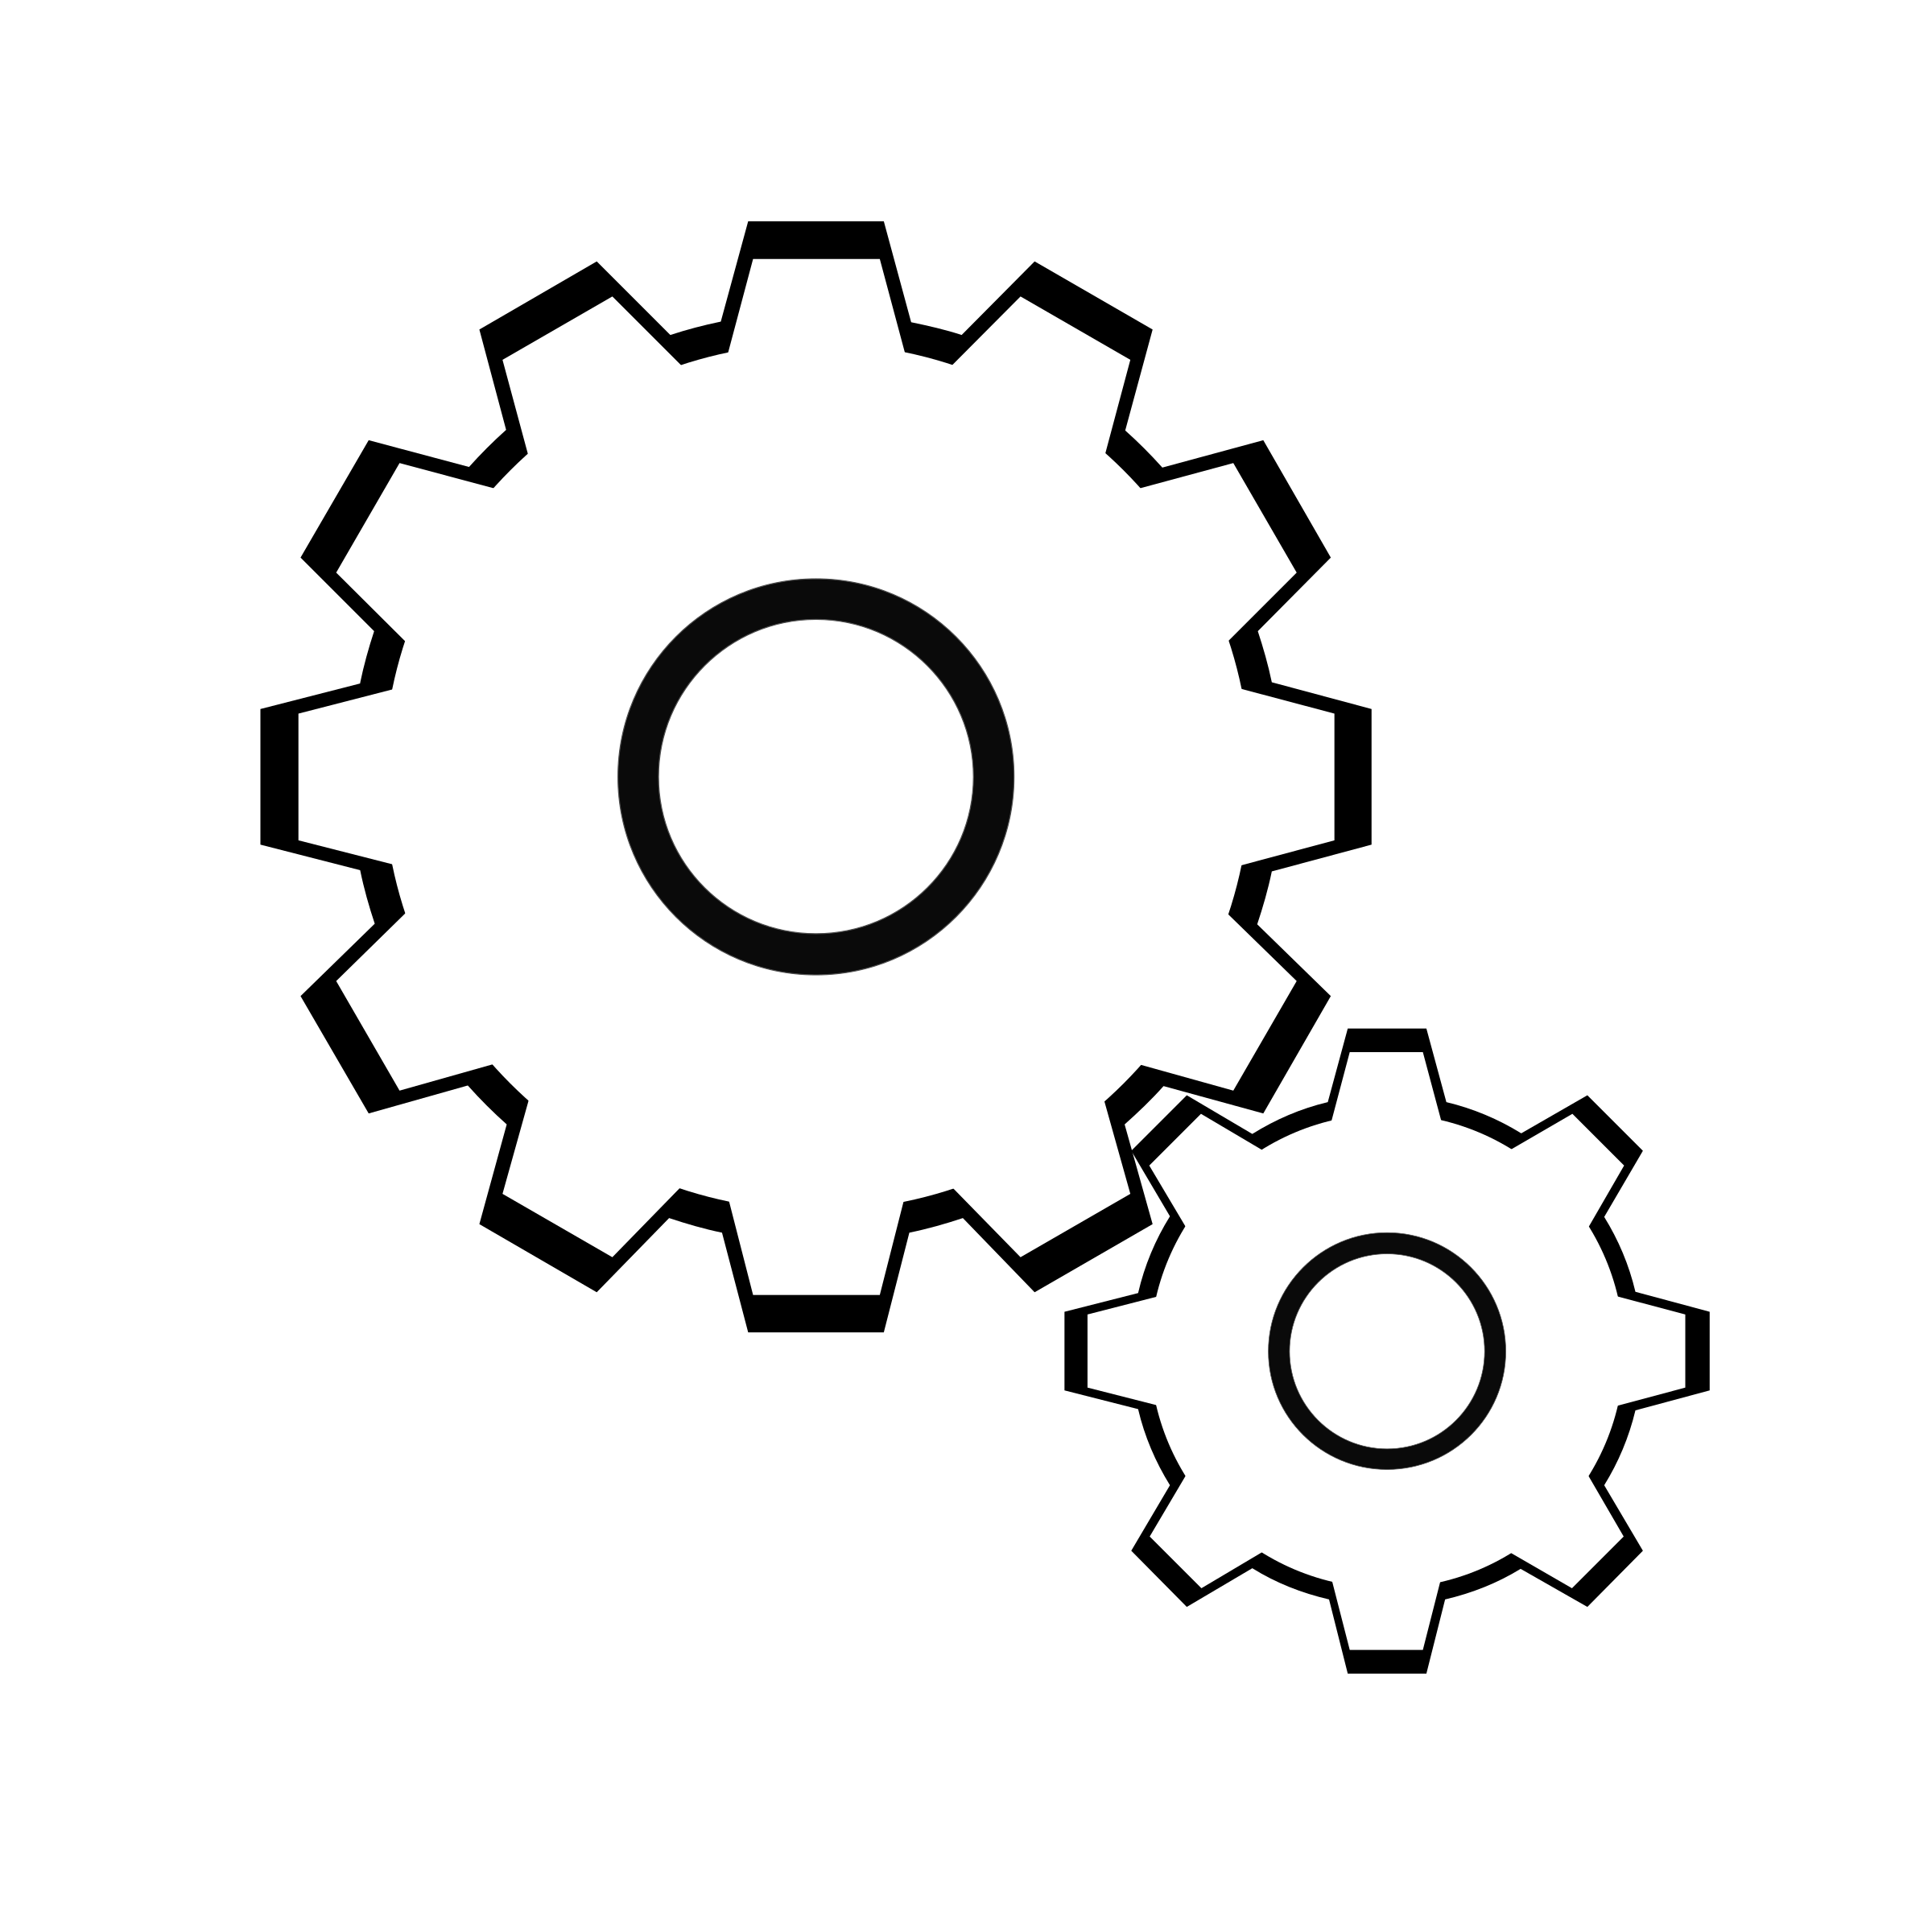 White clipart gear. Simple gears big image